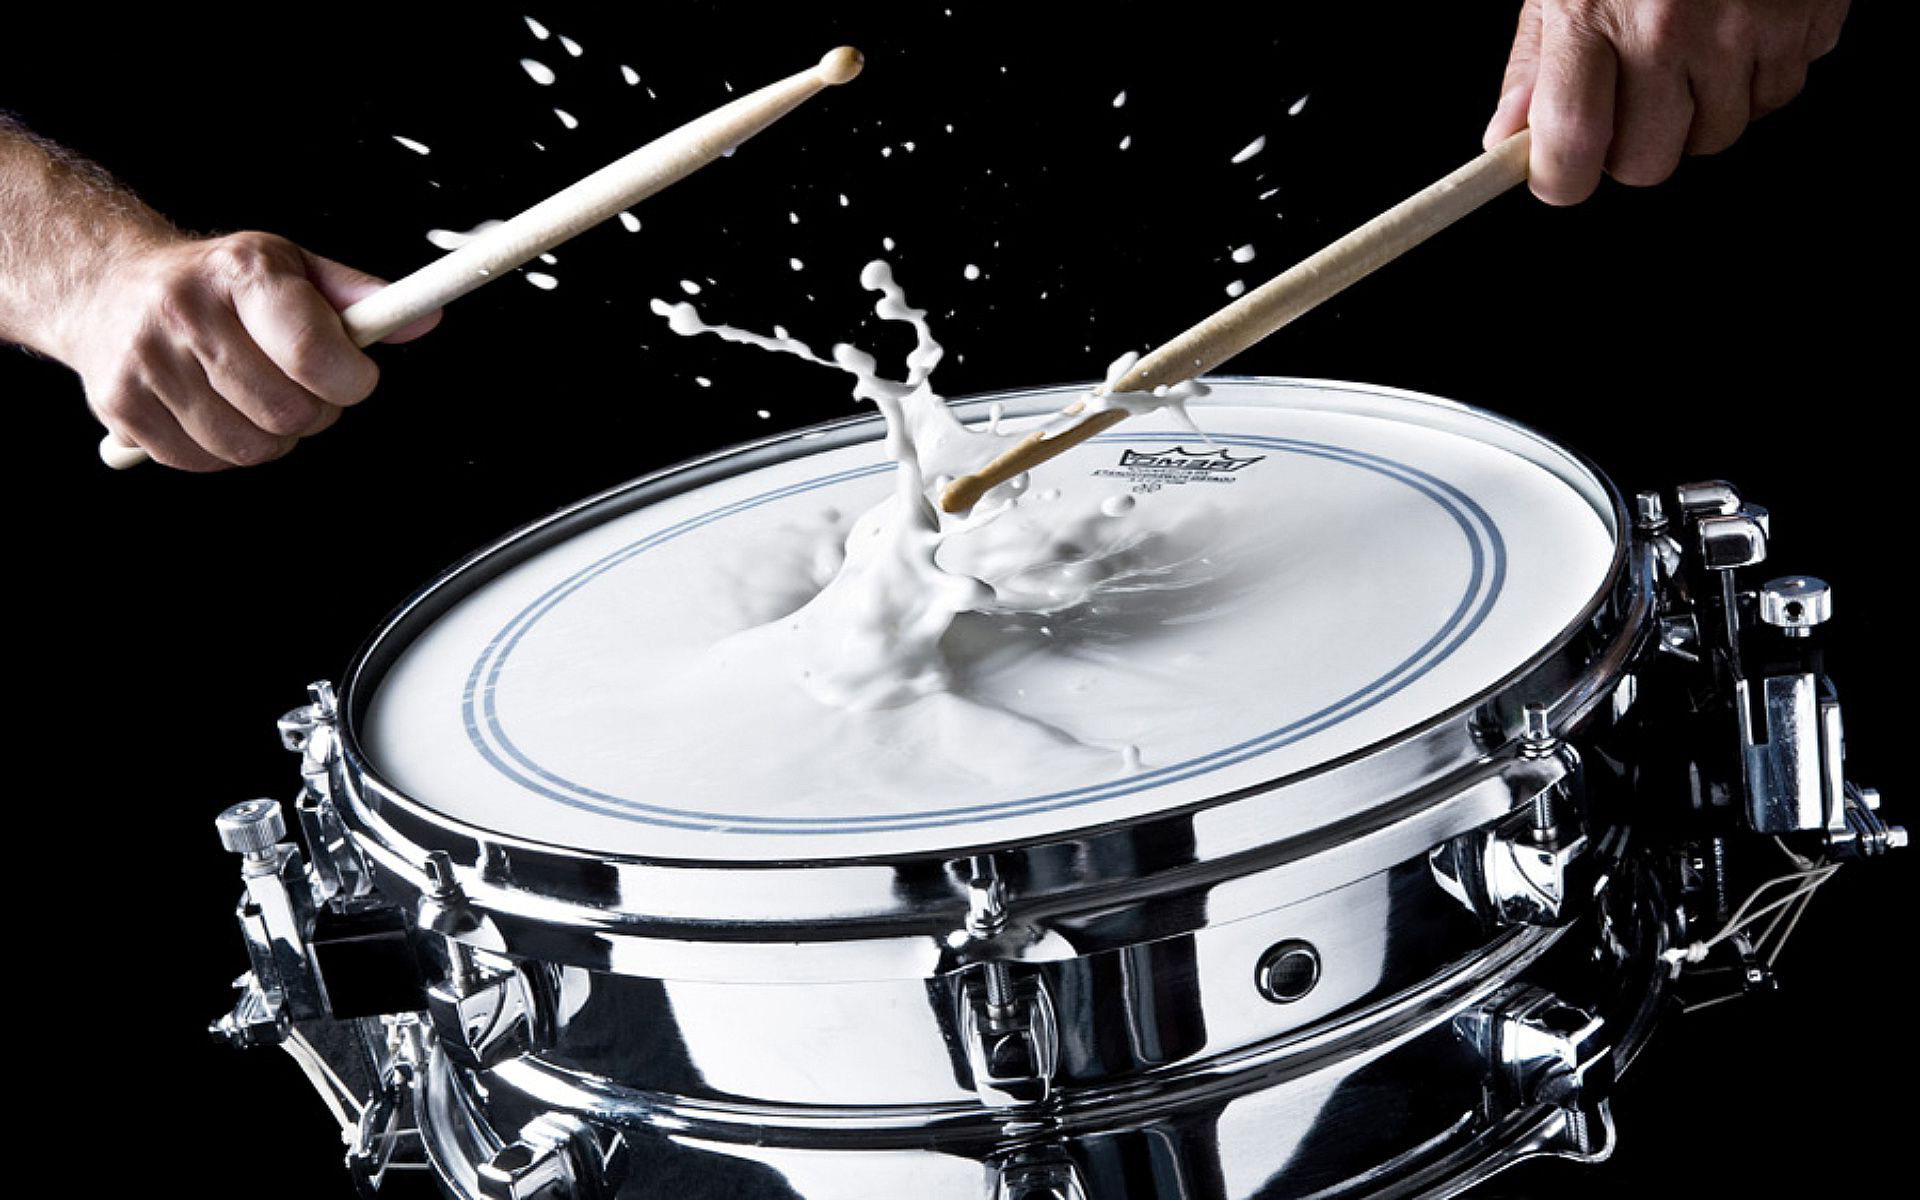 1920x1200 ... Fine HDQ Drum Images | Cool Full HD Wallpapers Drum Set ...